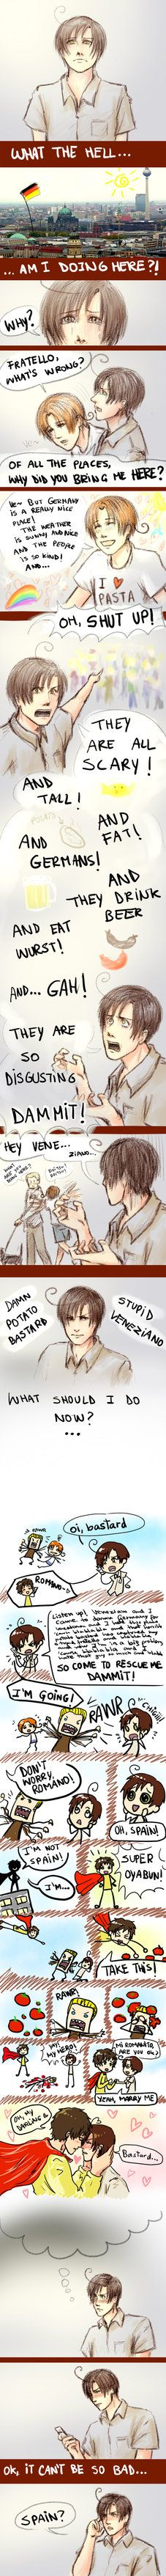 Damn potato bastard by ~CHIGII on deviantART     never give up romano :)   Omg omg omg omg OTP